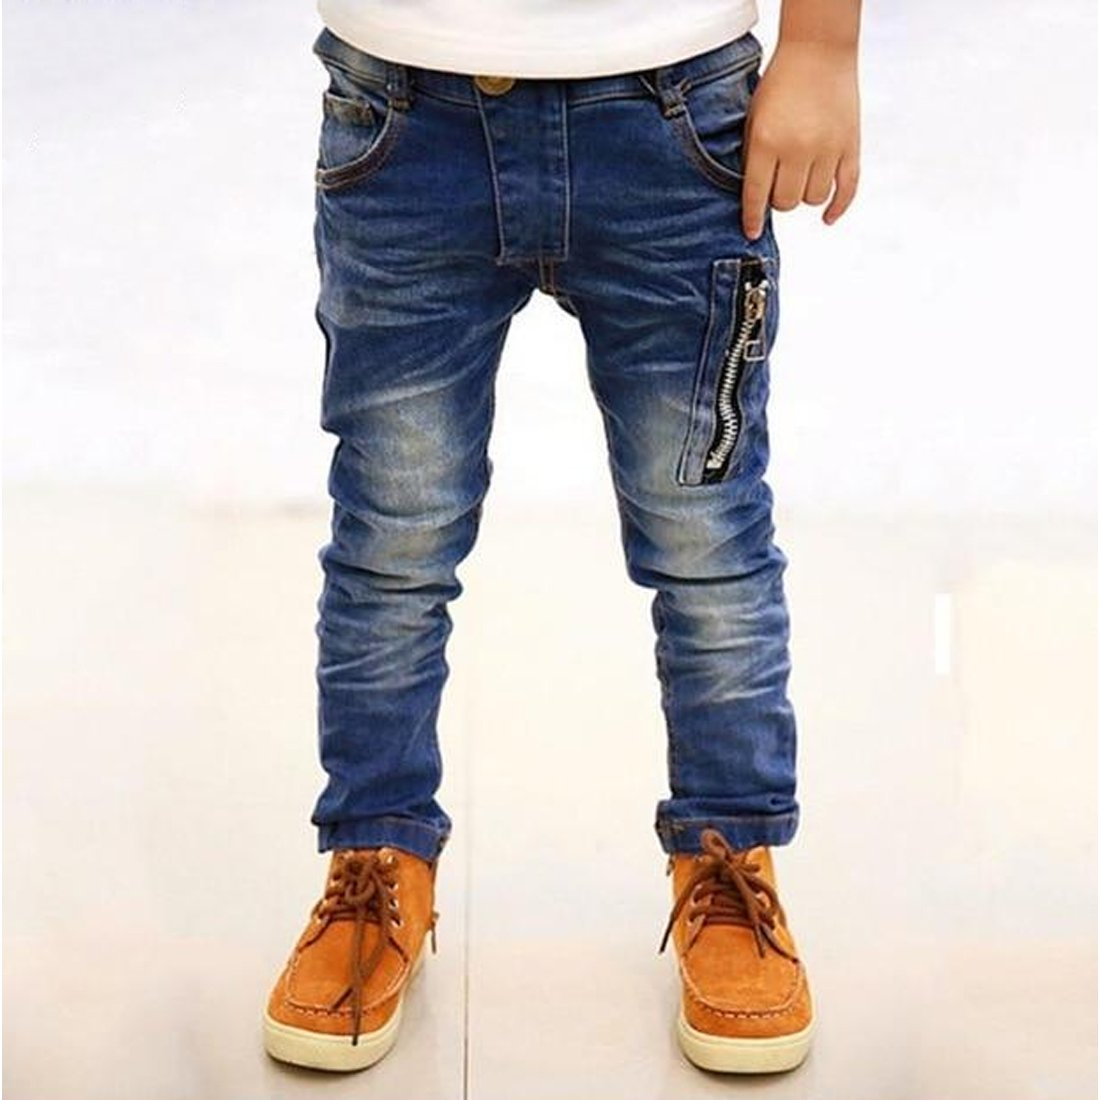 Boys Jeans Pants 2019 Fashion Boys Jeans For Spring Autumn Children's Denim Trousers Kids Dark Blue Designed Pant